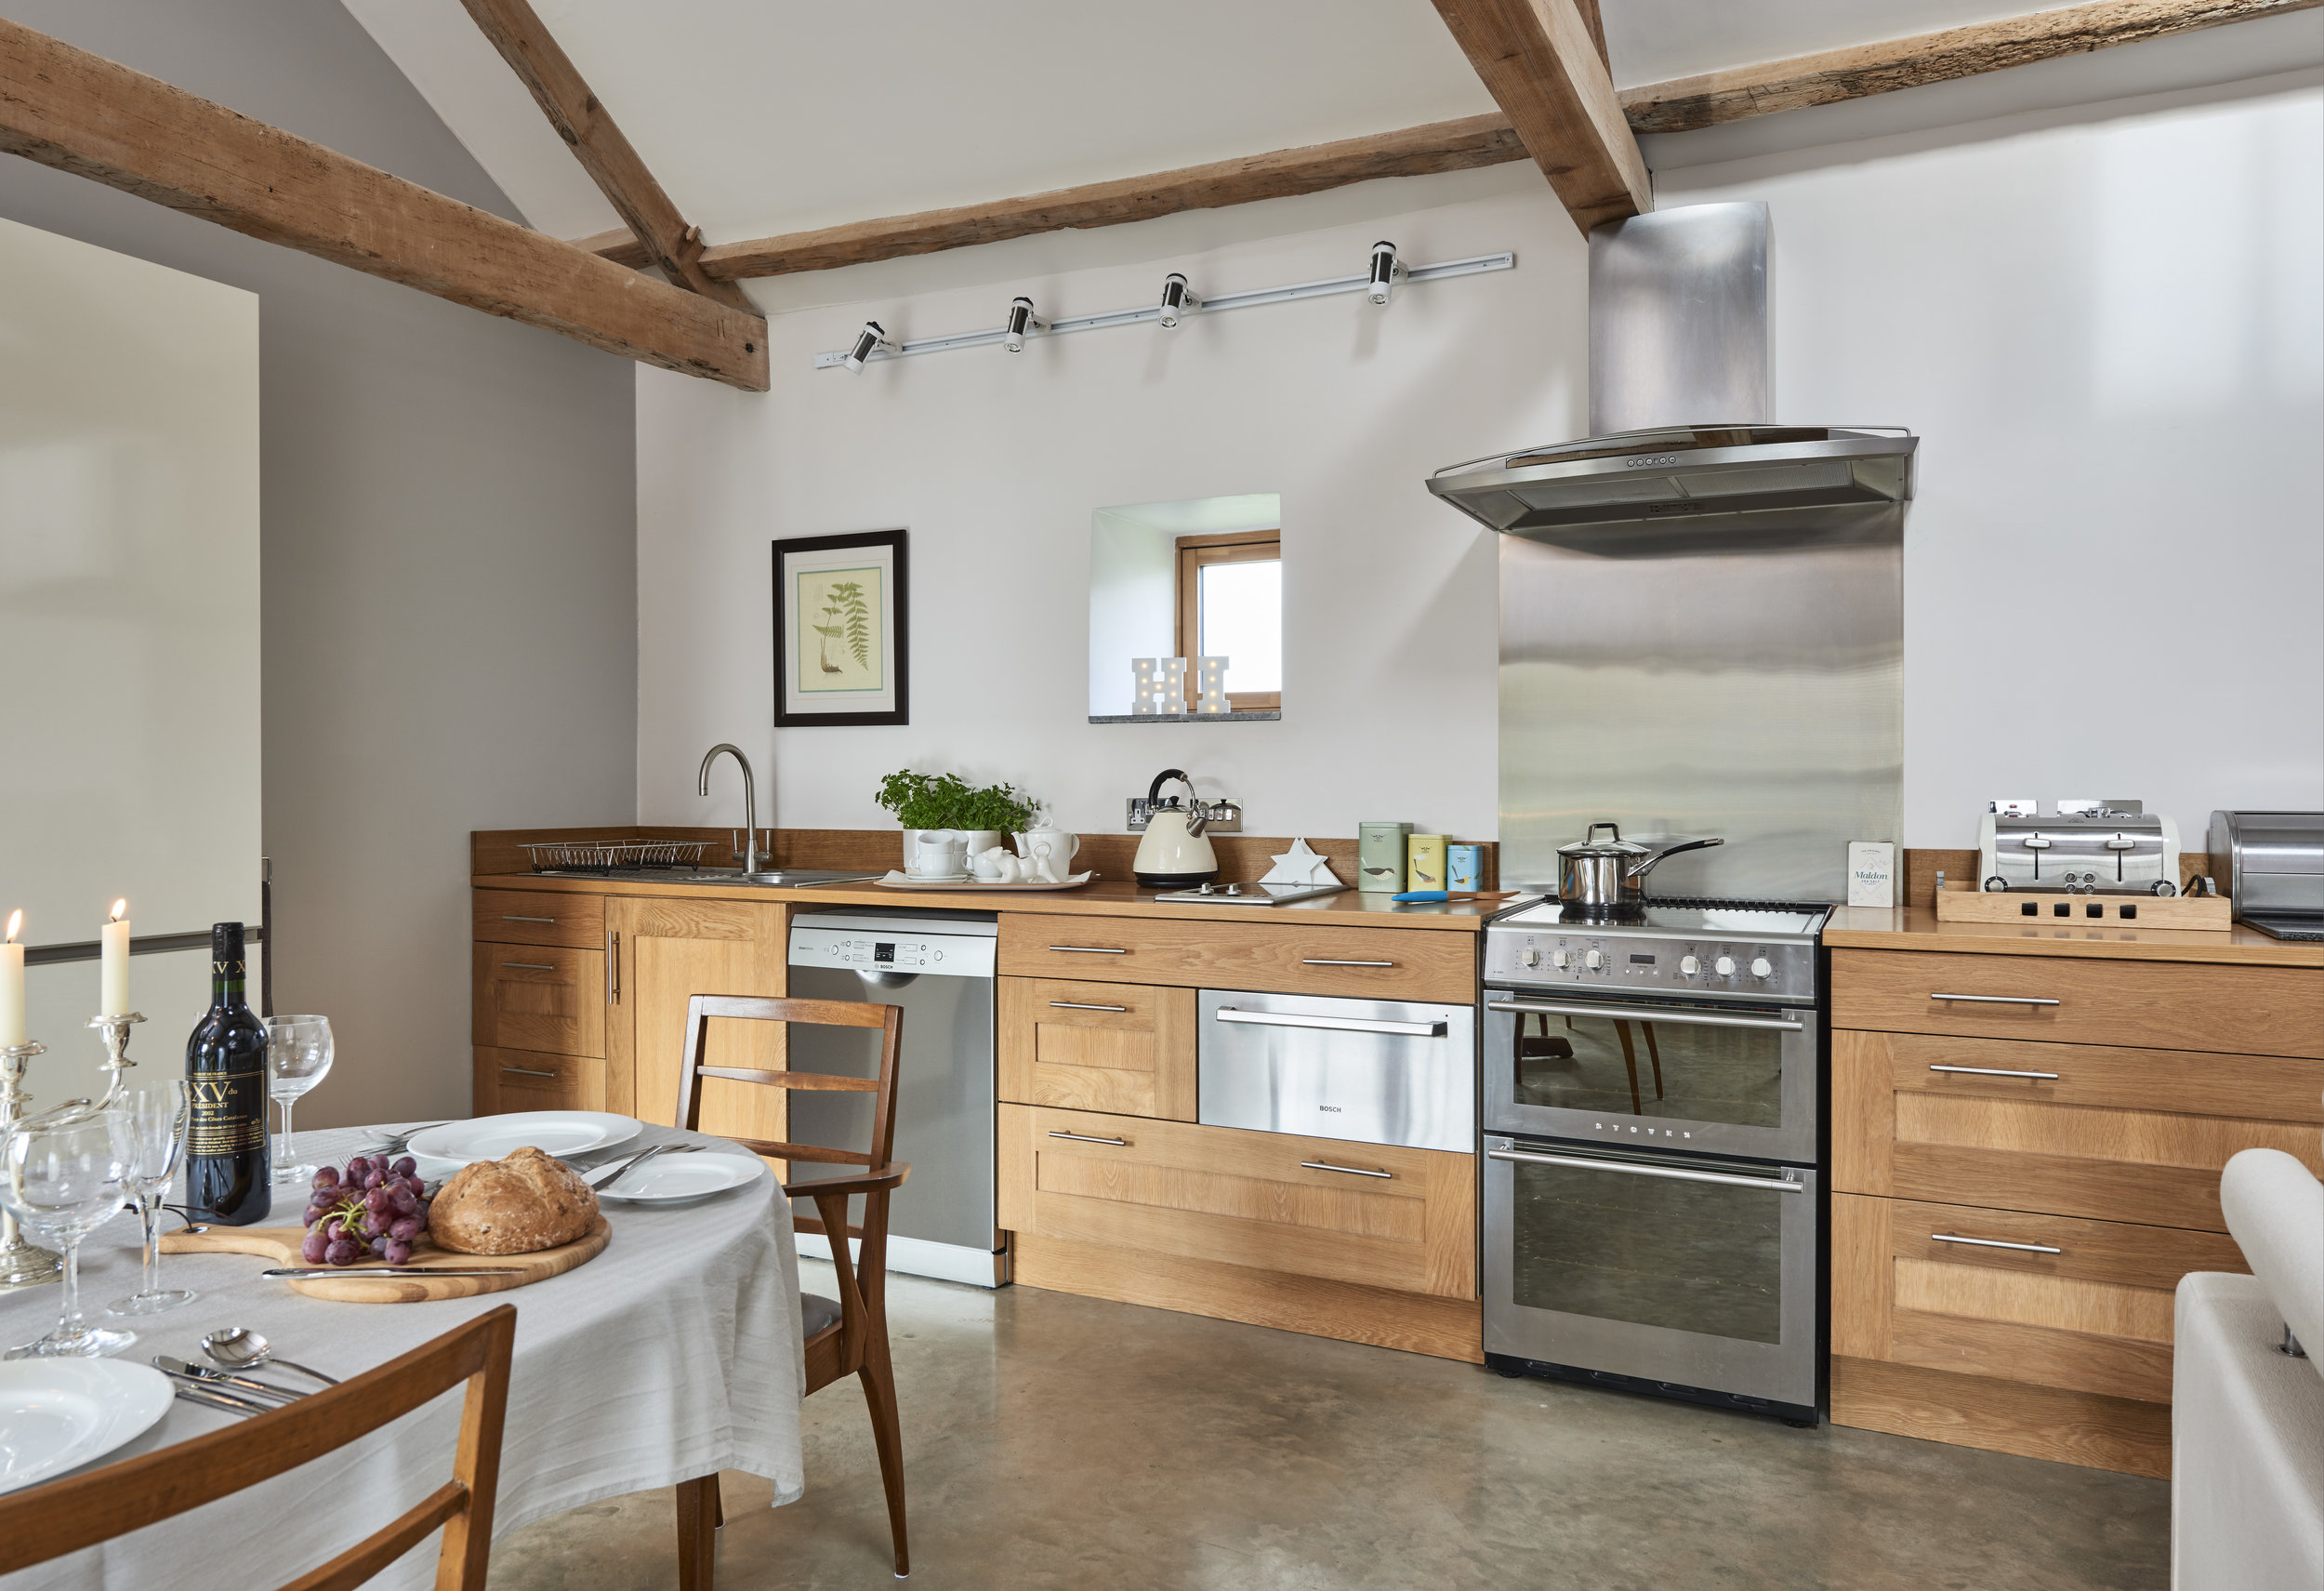 The fully equipped solid oak kitchen